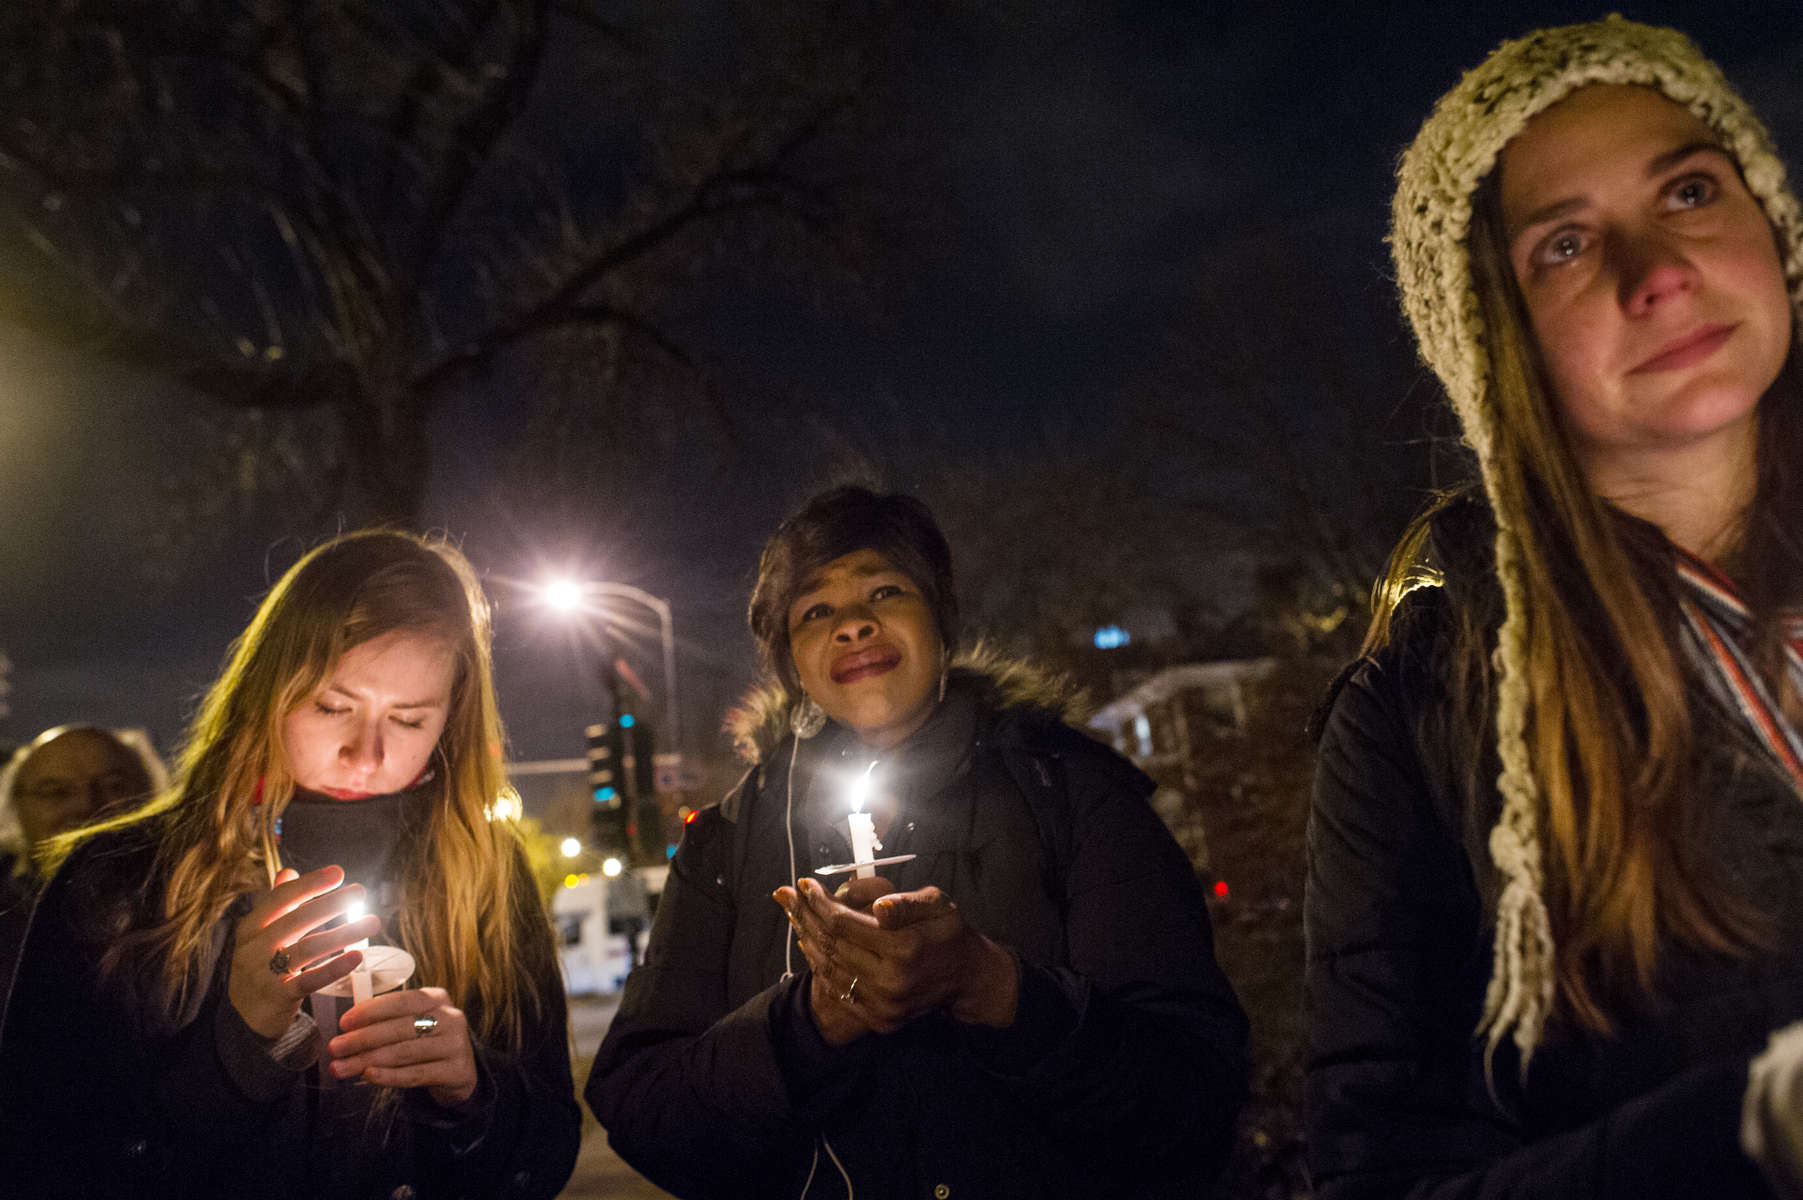 Women participate in a vigil at The First Unitarian Church of Chicago marking the shooting of Michael Brown in Ferguson, Missouri.